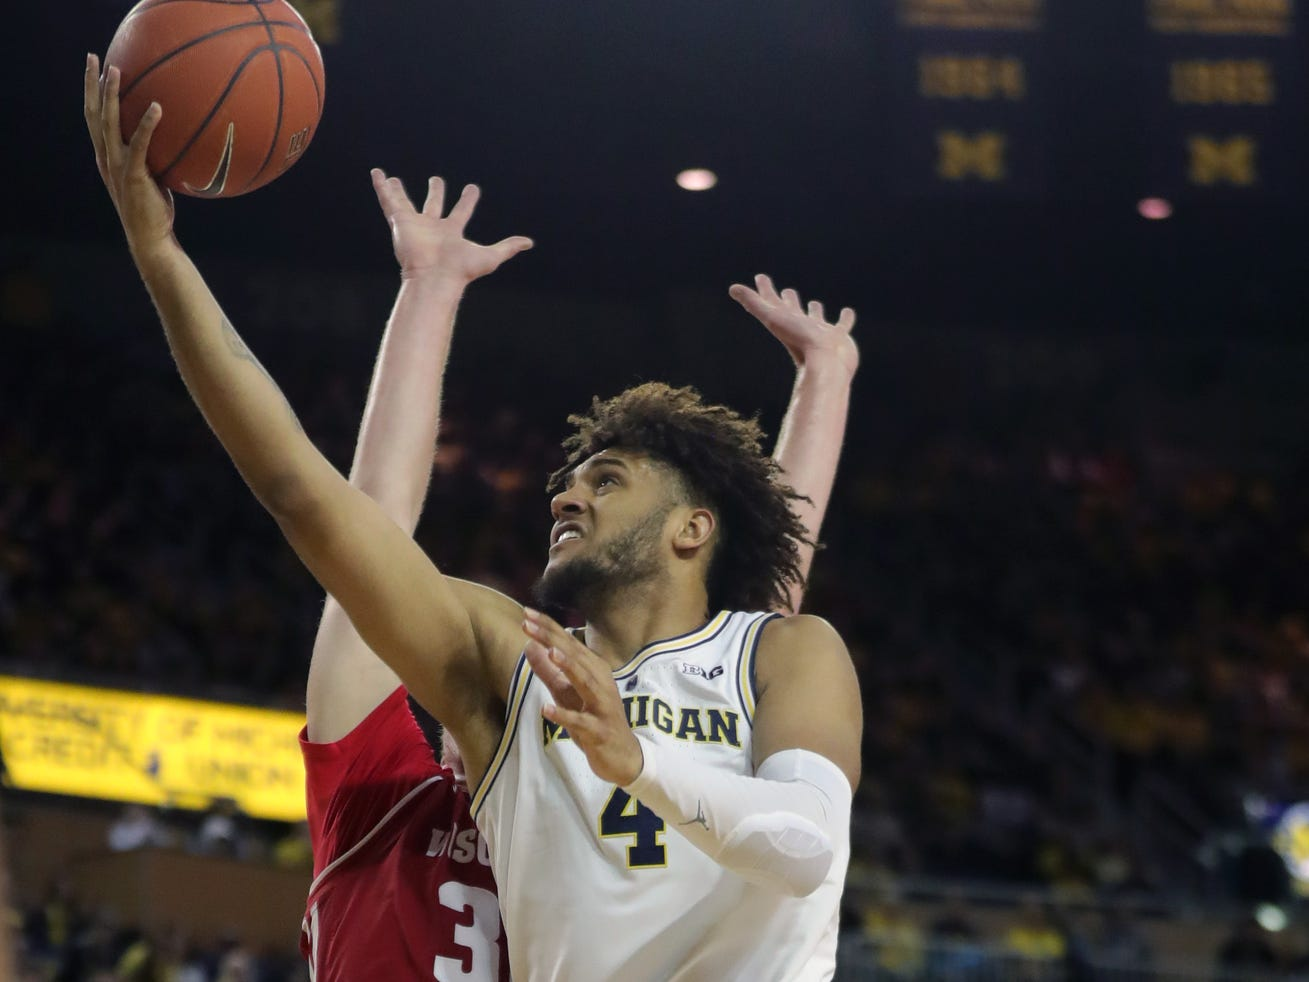 Michigan forward Isaiah Livers scores against Wisconsin forward Nate Reuvers during the first half Saturday, Feb. 9, 2019 at Crisler Center in Ann Arbor.